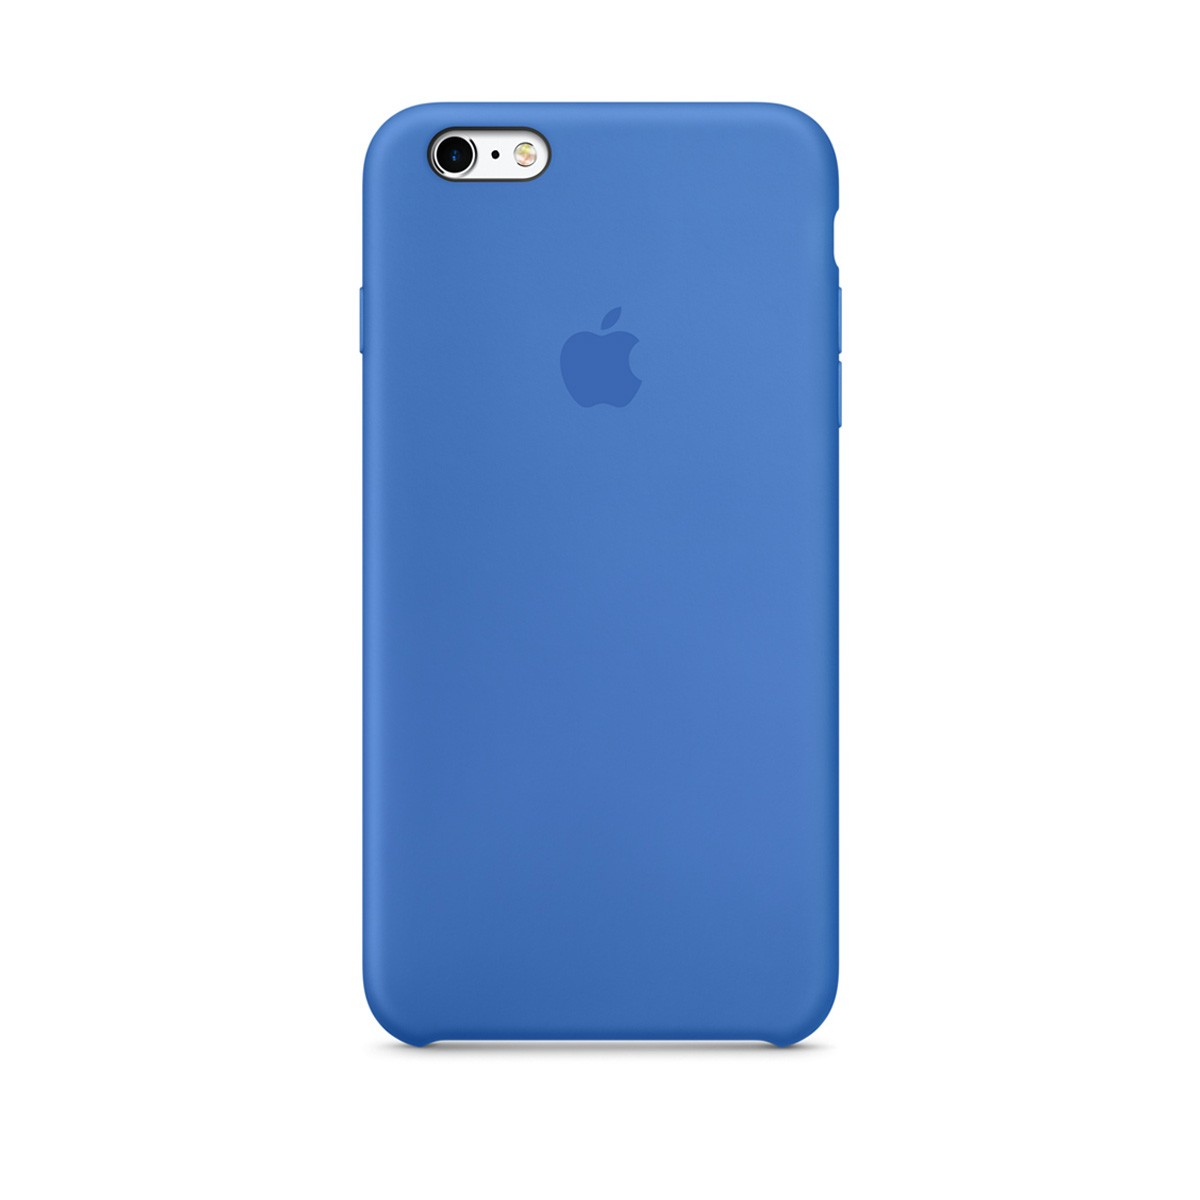 Pouzdro Apple iPhone 6/6S Silicone Case Royal modré